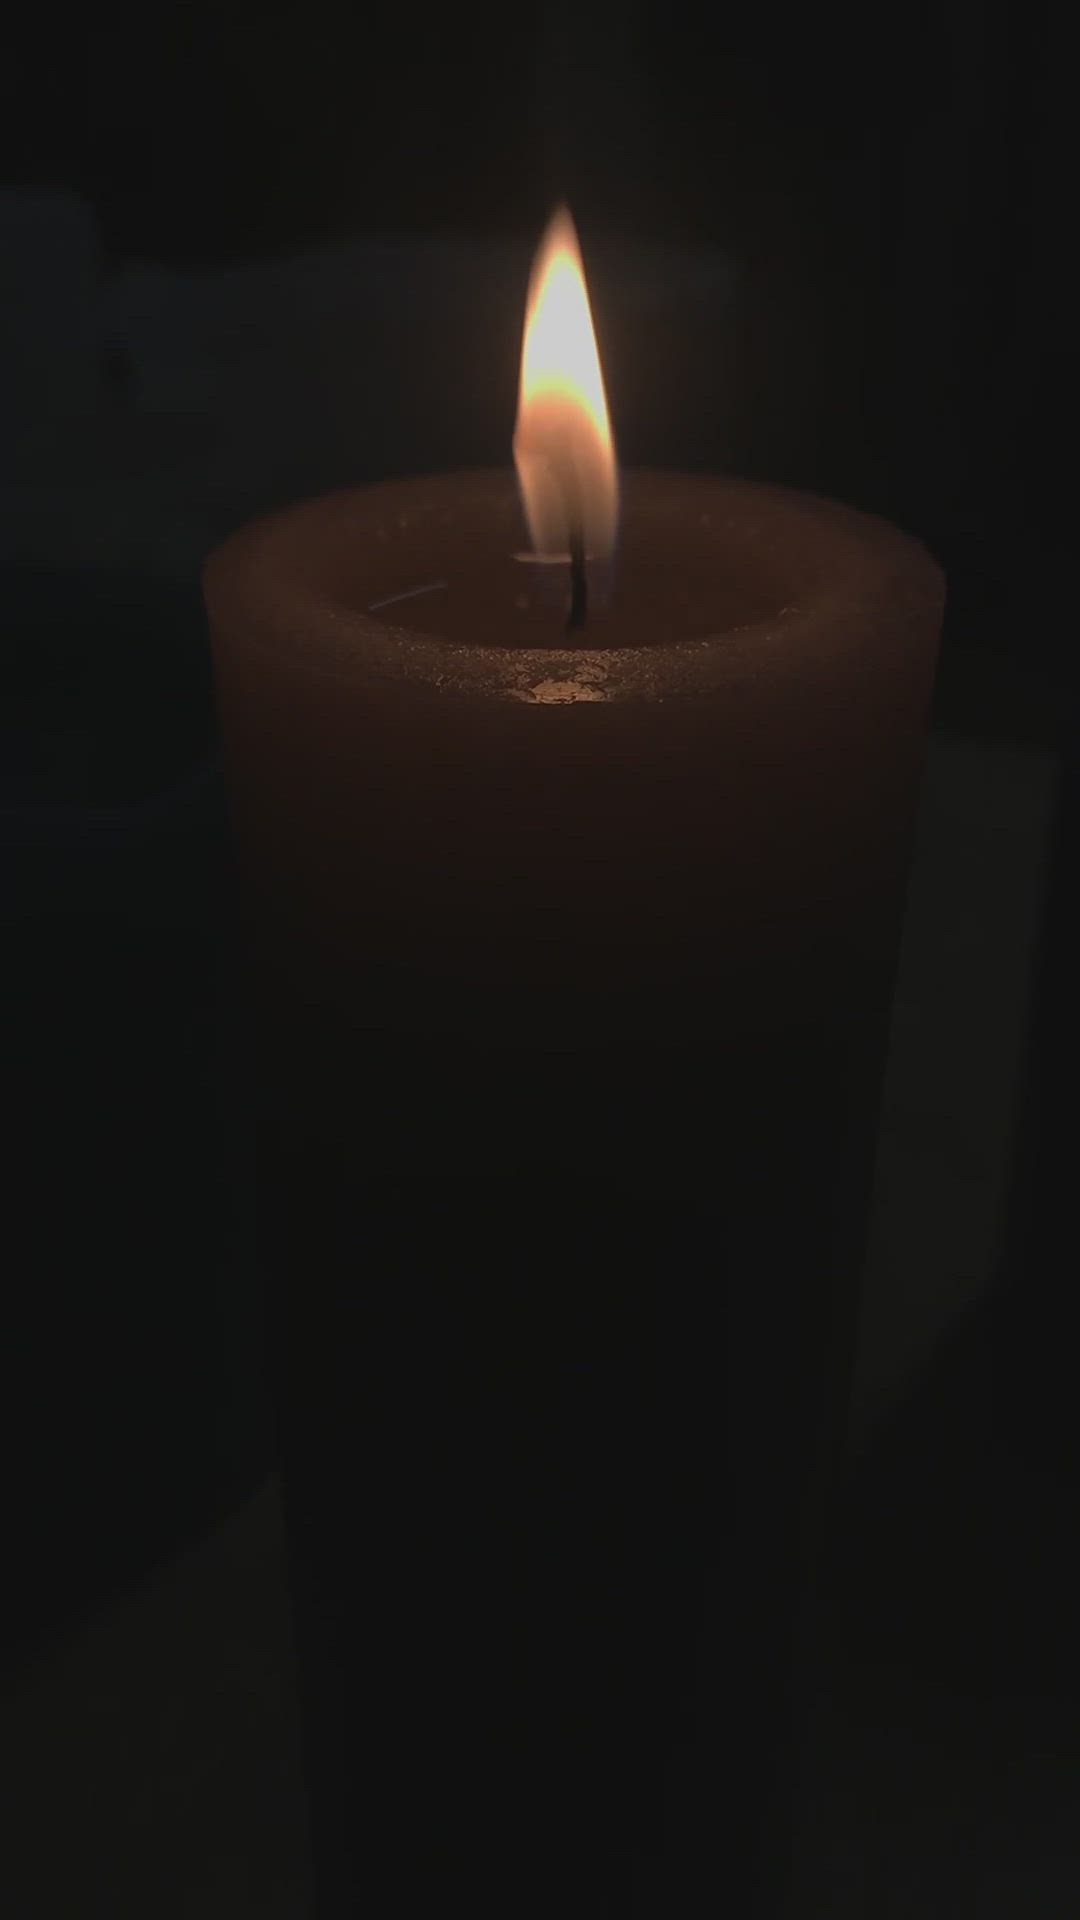 Pin On Proud To Be Catholic Wallpaper candle close up flame dark